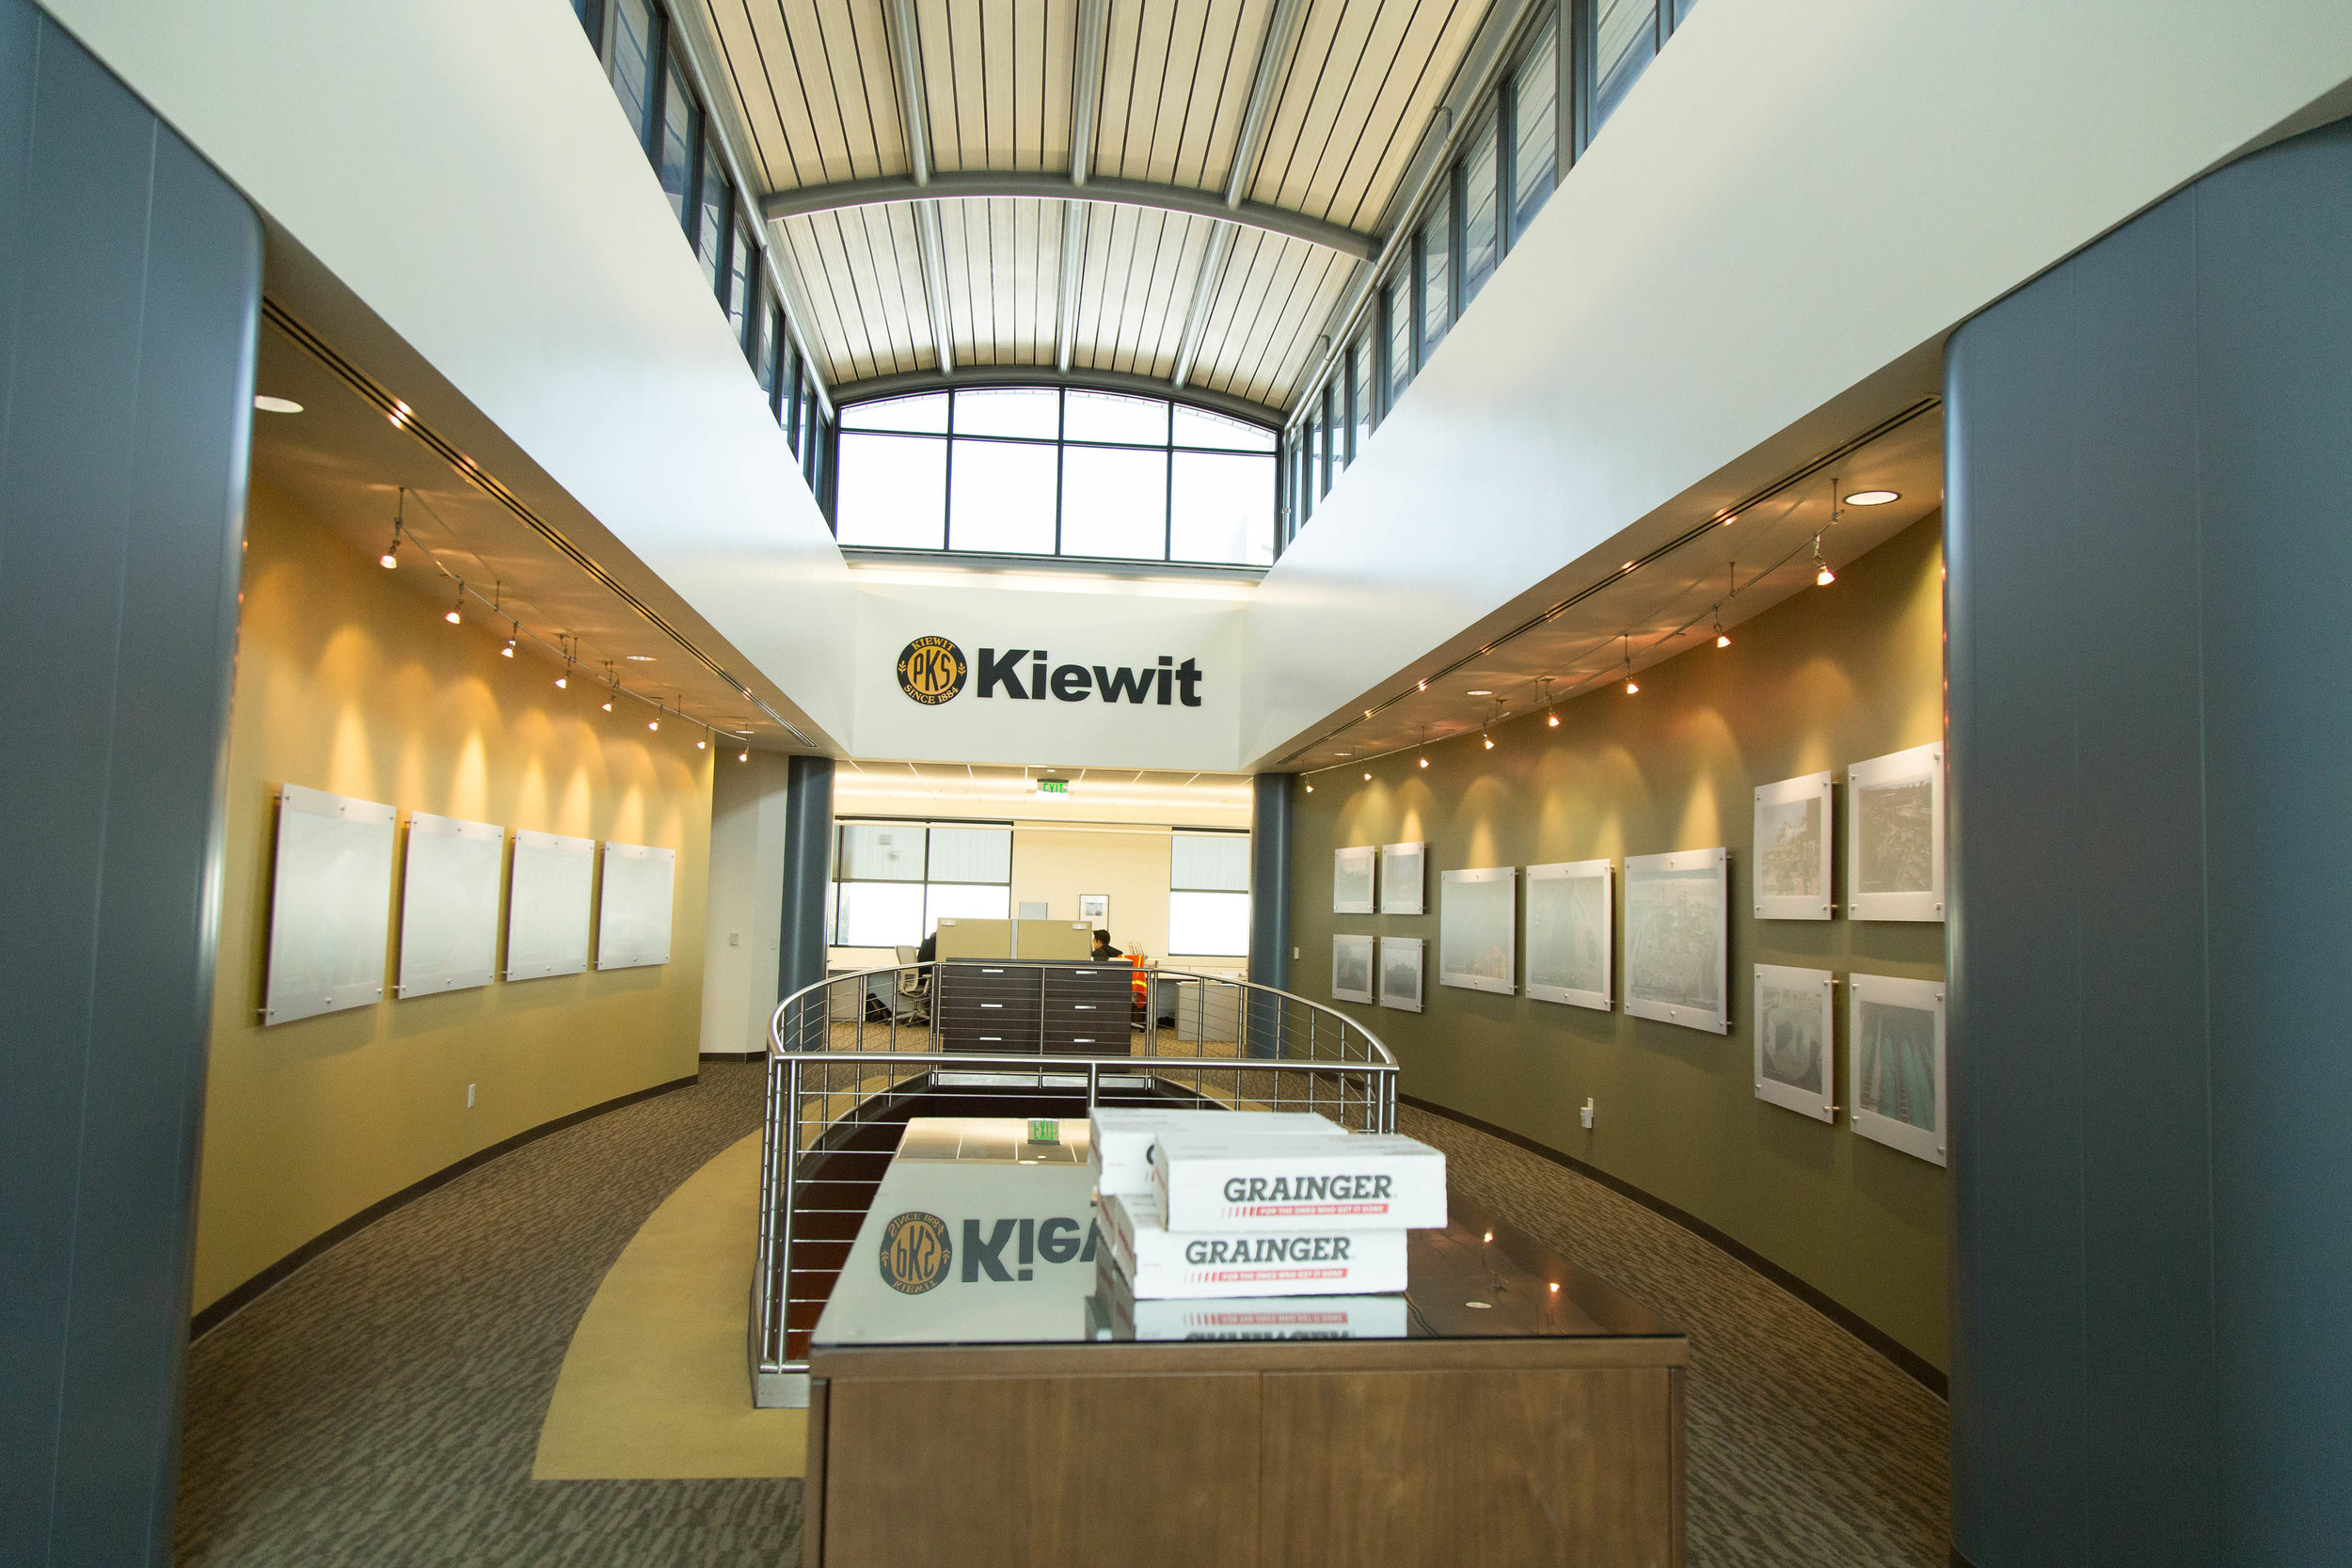 Kiewit Before 9.jpg